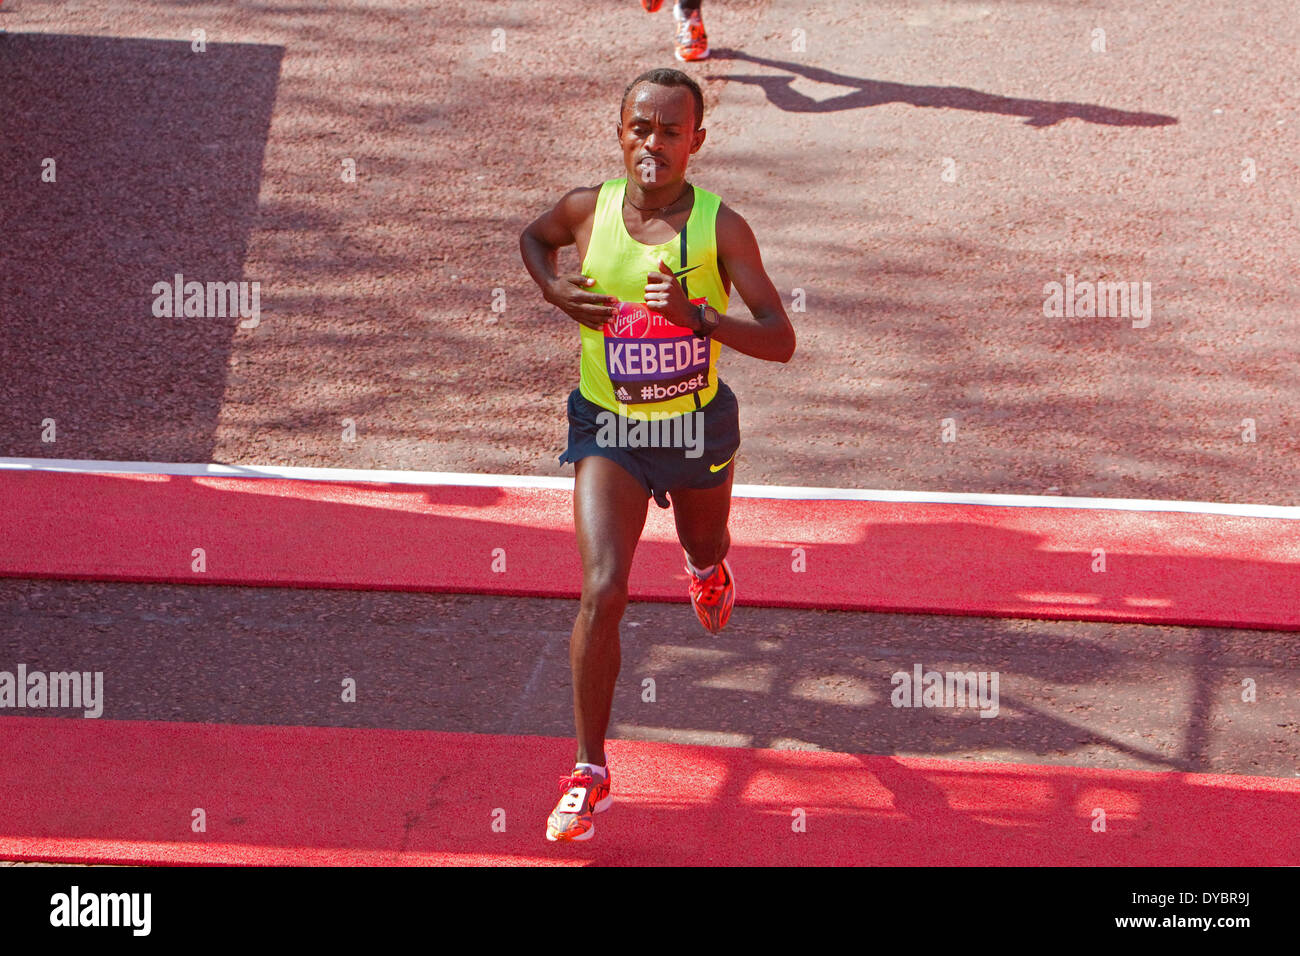 London, UK. 13th April, 2014. Tsegaye Kebede crossing the finish line of the London Marathon 2014  Credit:  Keith Larby/Alamy Live News - Stock Image